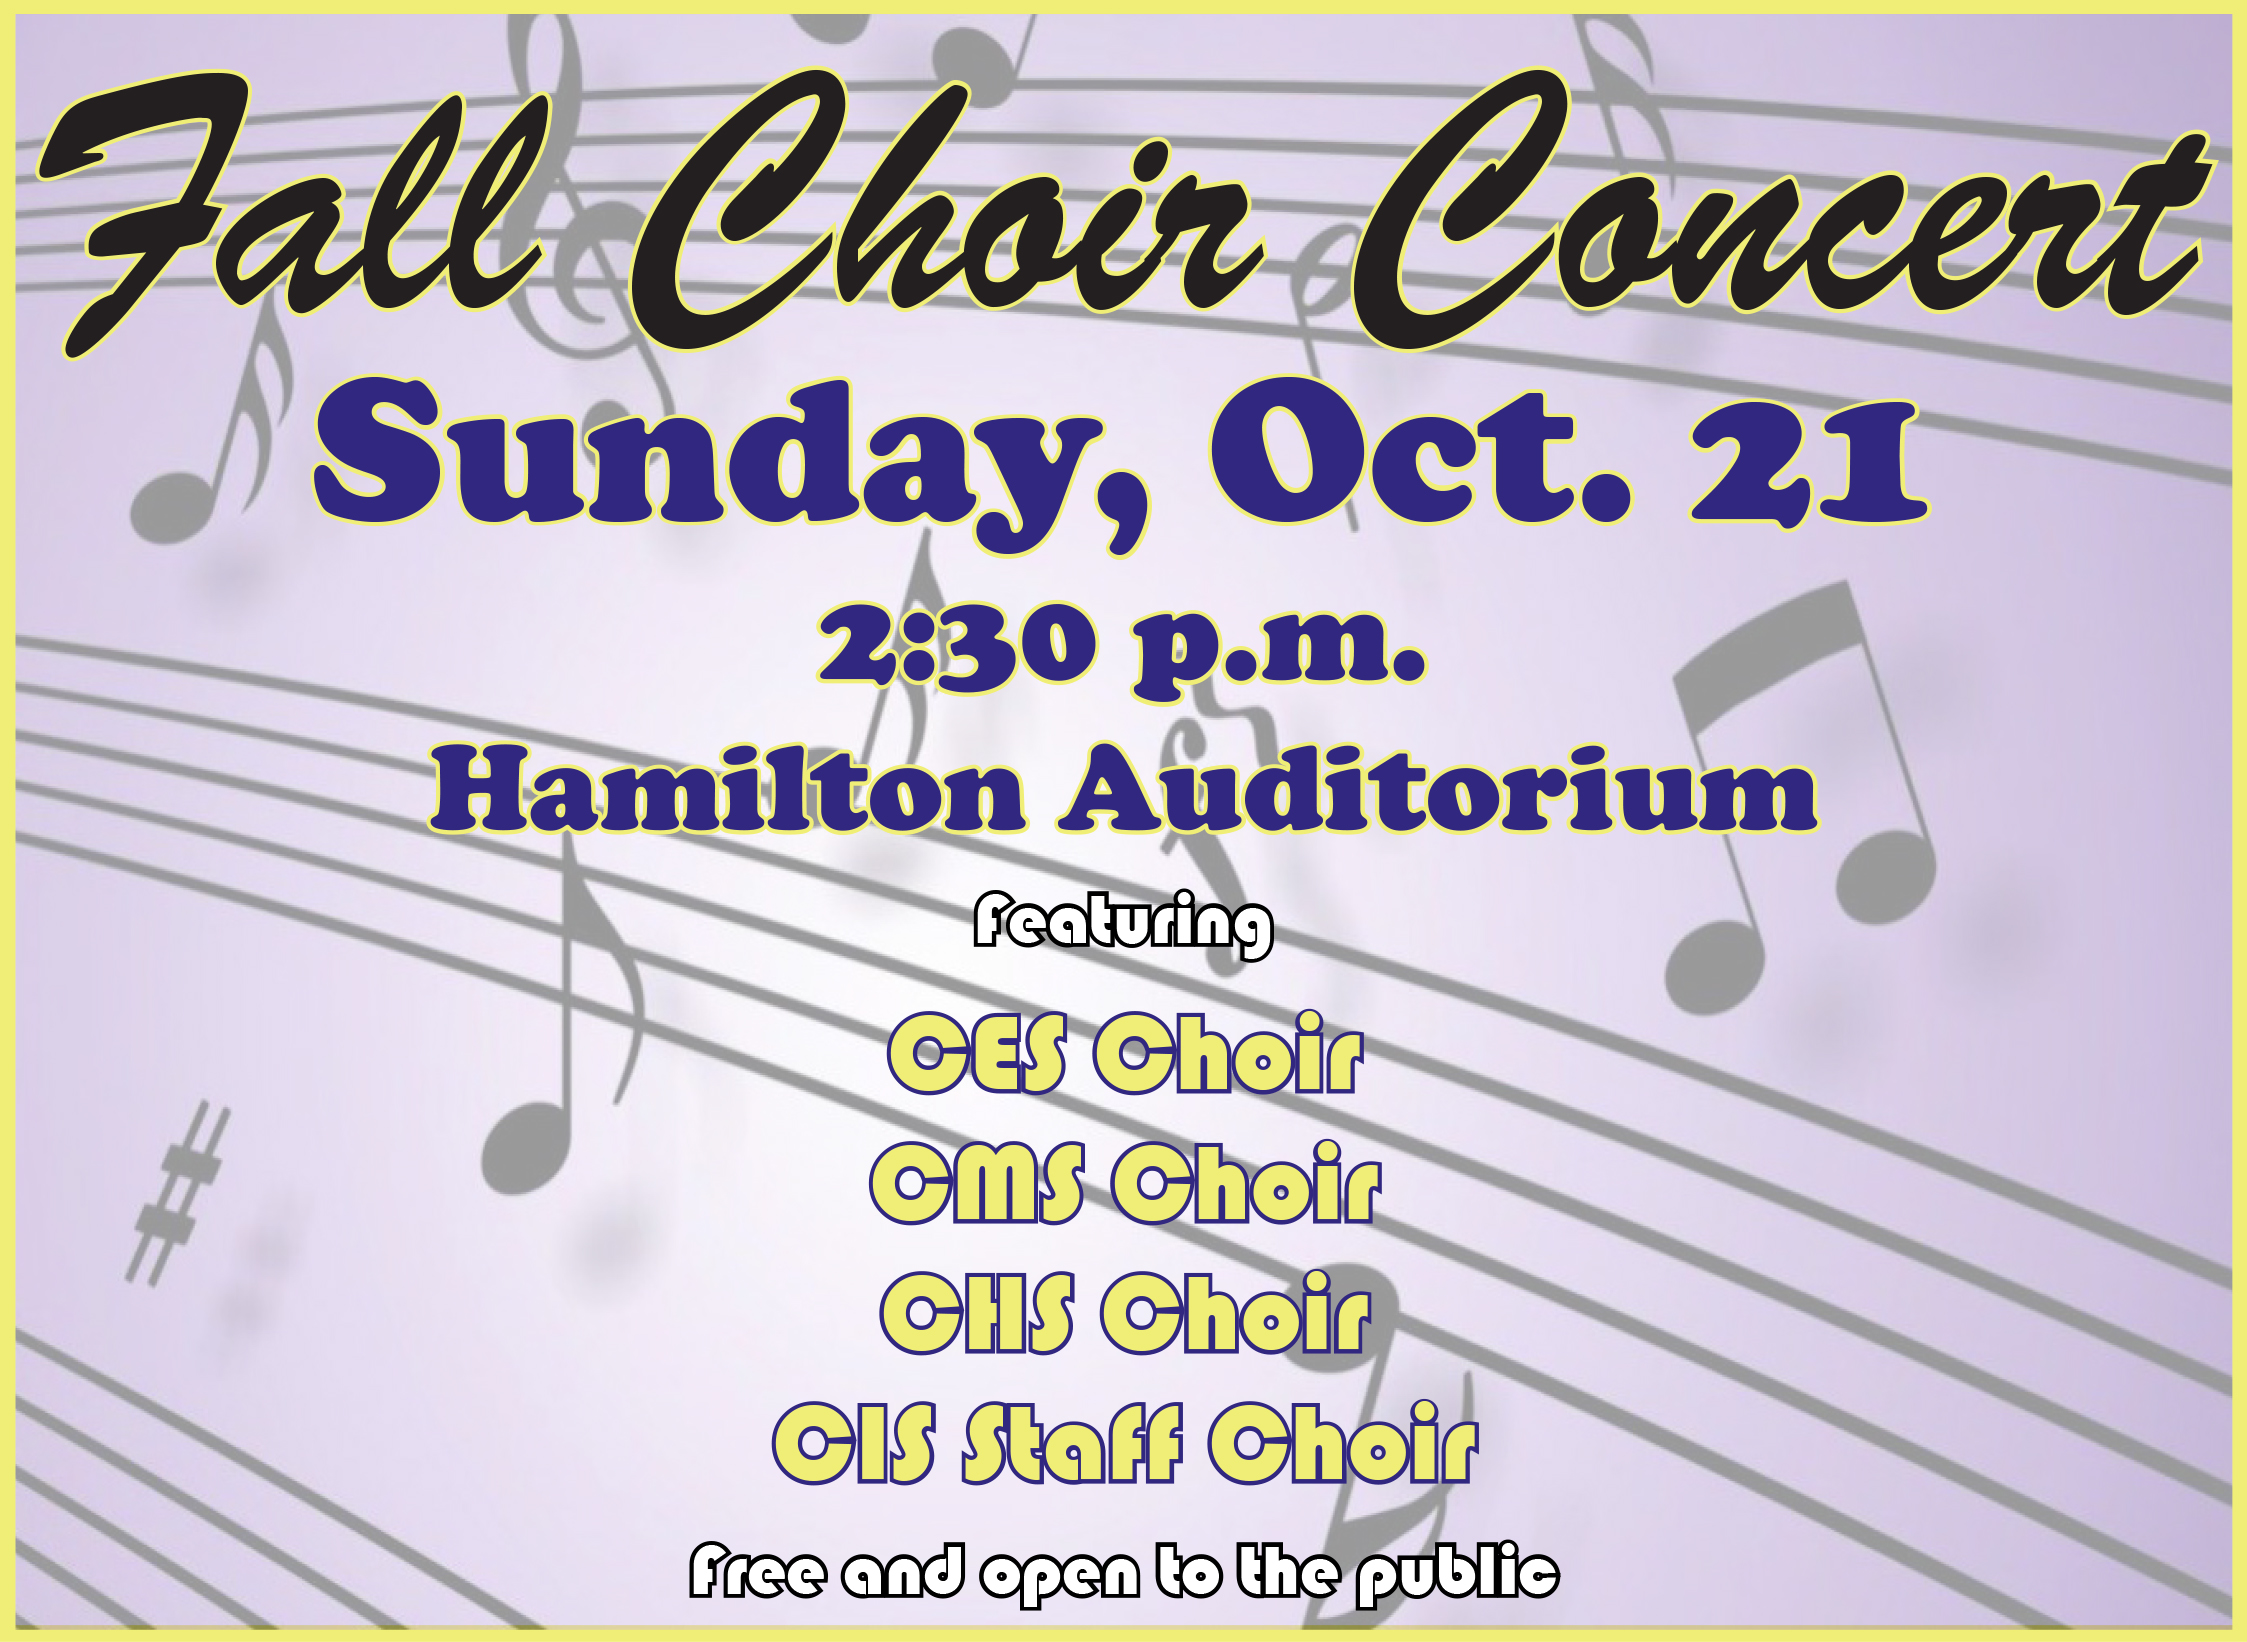 Campbellsville Independent Schools will host a fall choir concert on Sunday, Oct. 21.    Campbellsville elementary, middle and high school choirs will come together for a fall concert.    The concert will feature many different types of music, including pop, spirituals, country and more.    And, for the first time, there will be a performance by a CIS staff choir, which is made up of about 50 members.    Performances will begin at 2:30 p.m. in Hamilton Auditorium on the Campbellsville High School campus.